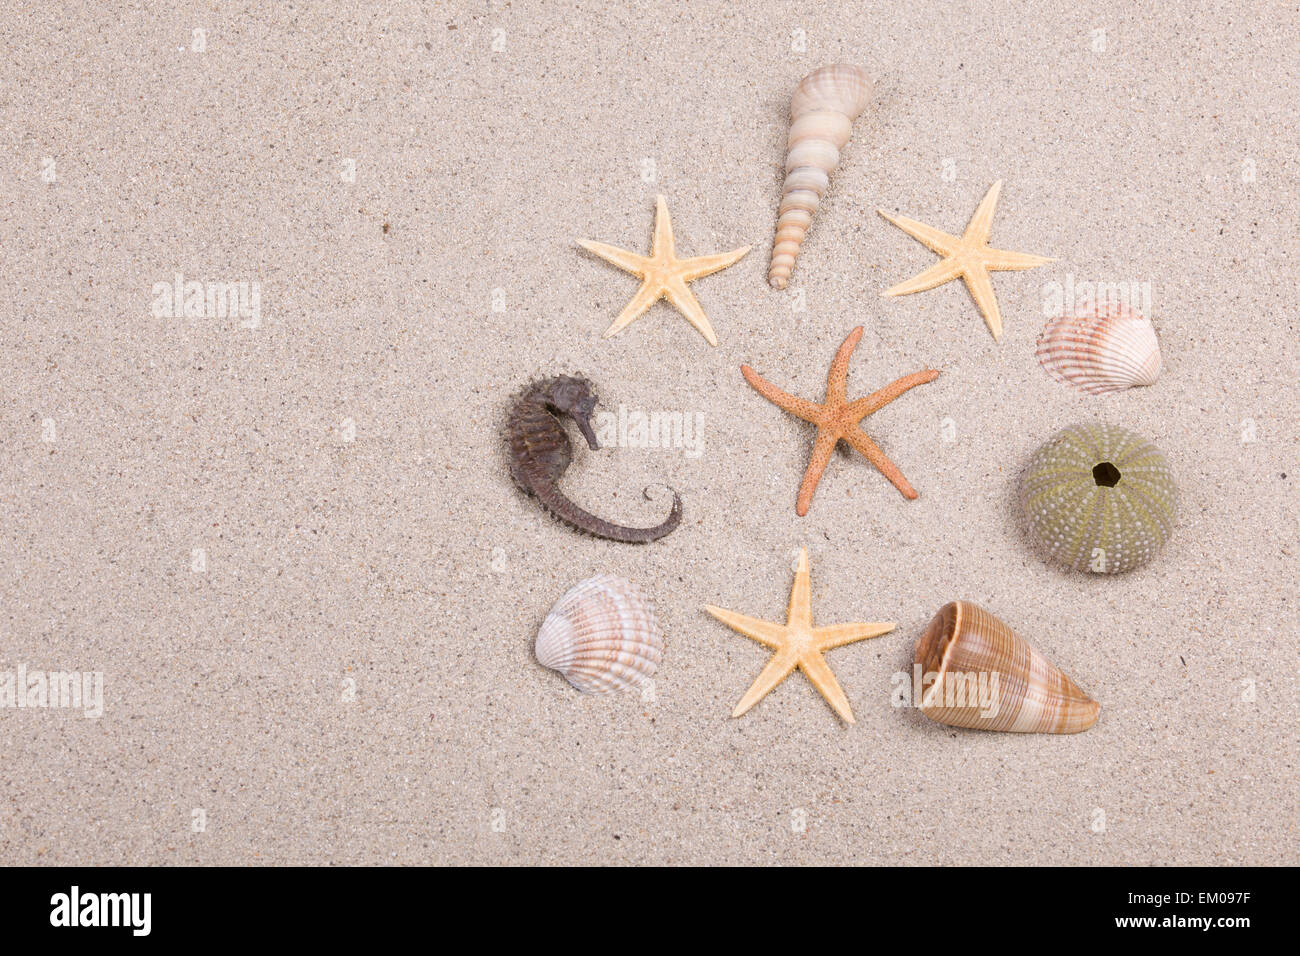 starfish and shells on the beach, vacation memories - Stock Image